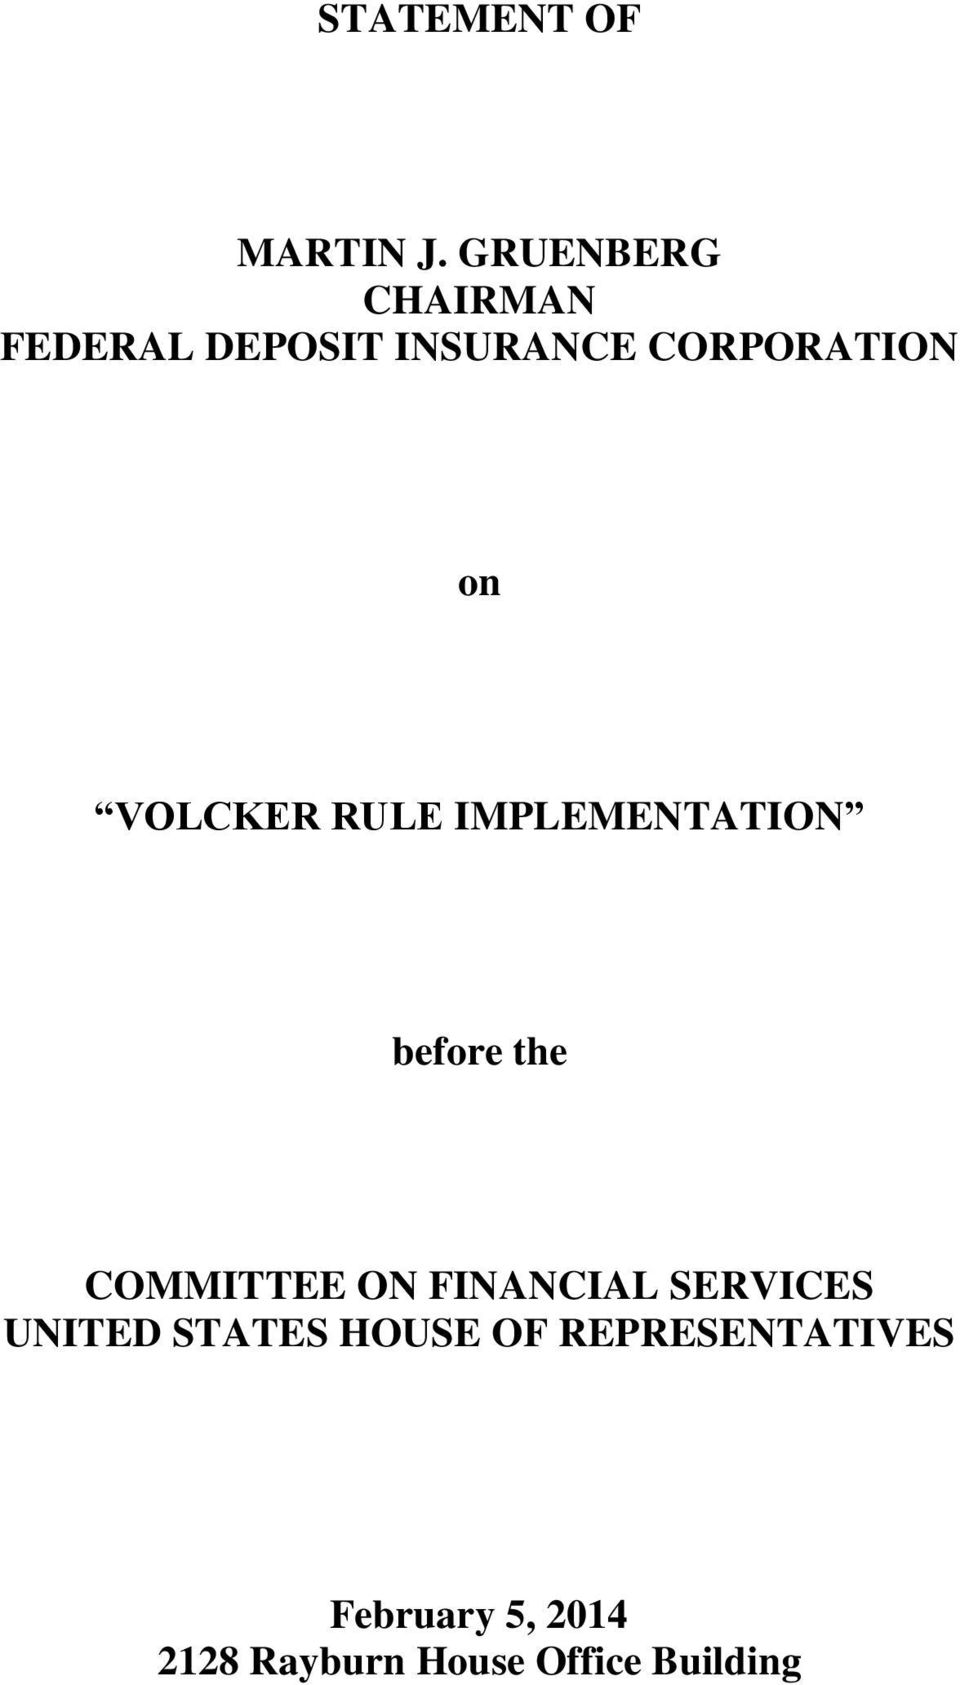 VOLCKER RULE IMPLEMENTATION before the COMMITTEE ON